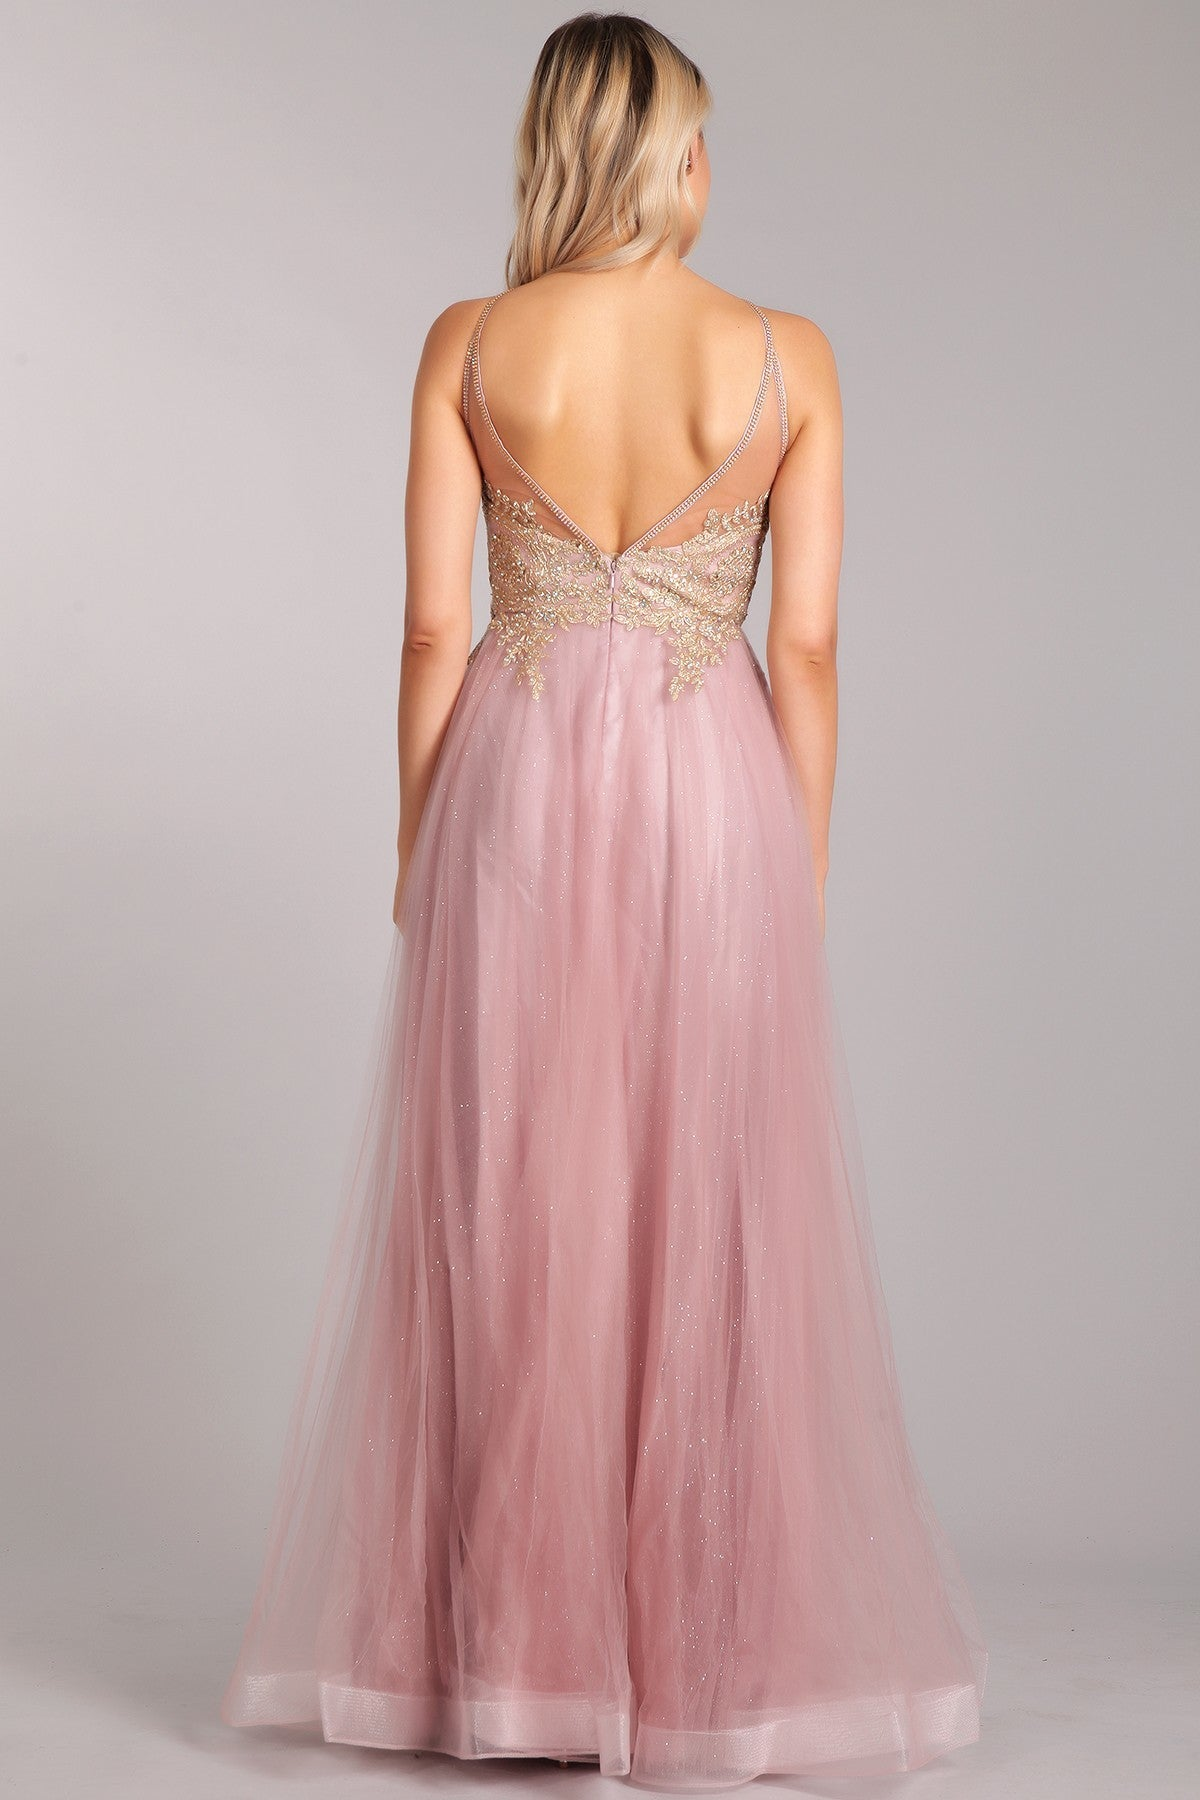 DRESS PARTY FF#57068